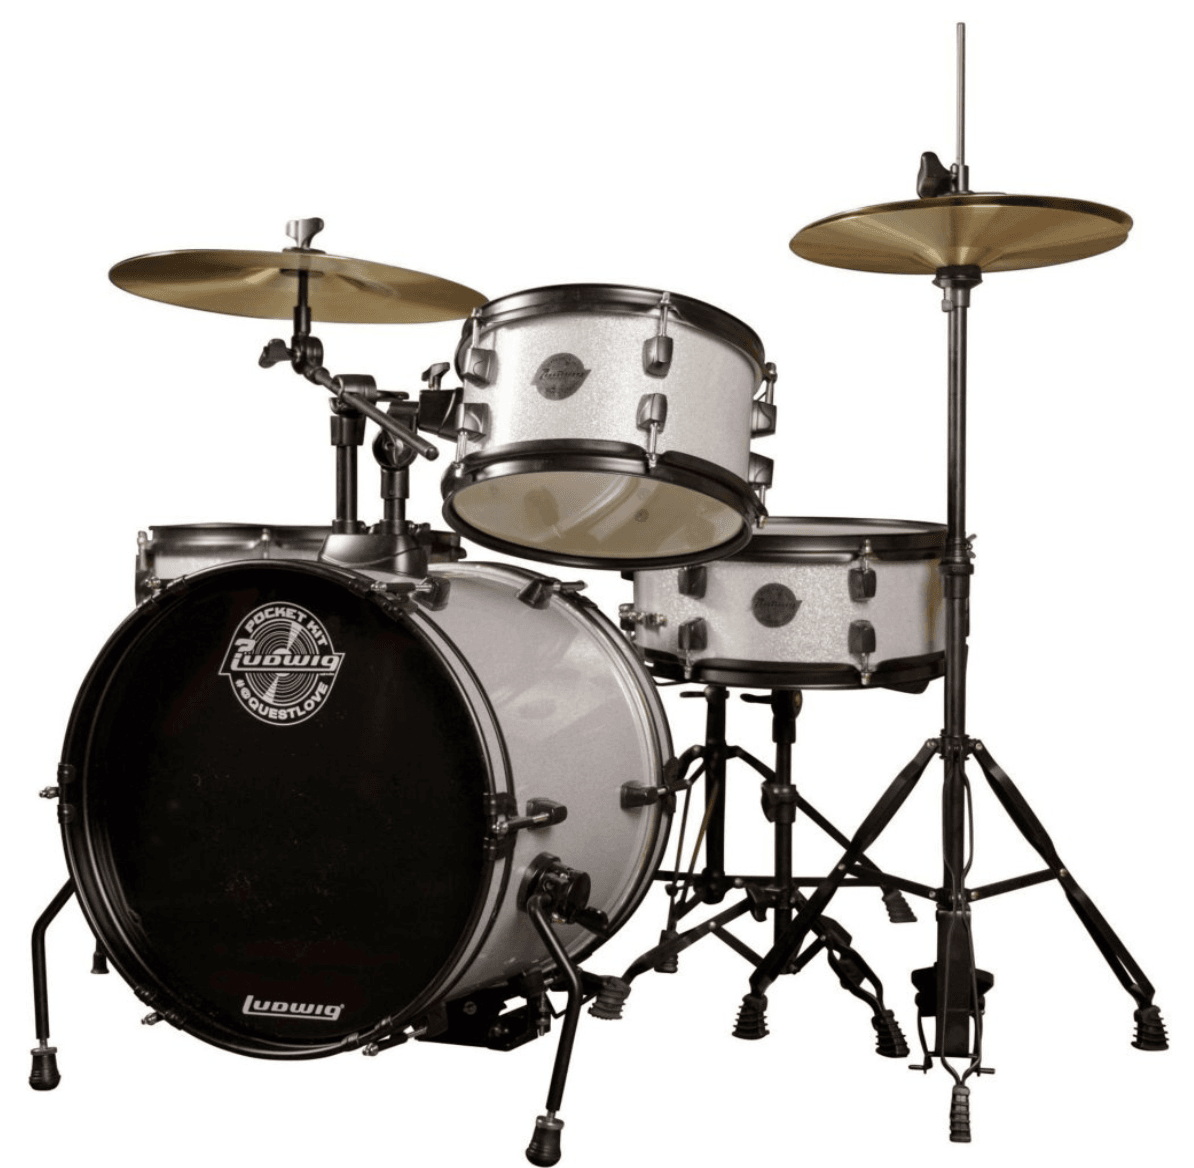 Ludwig Pocket Kit Review